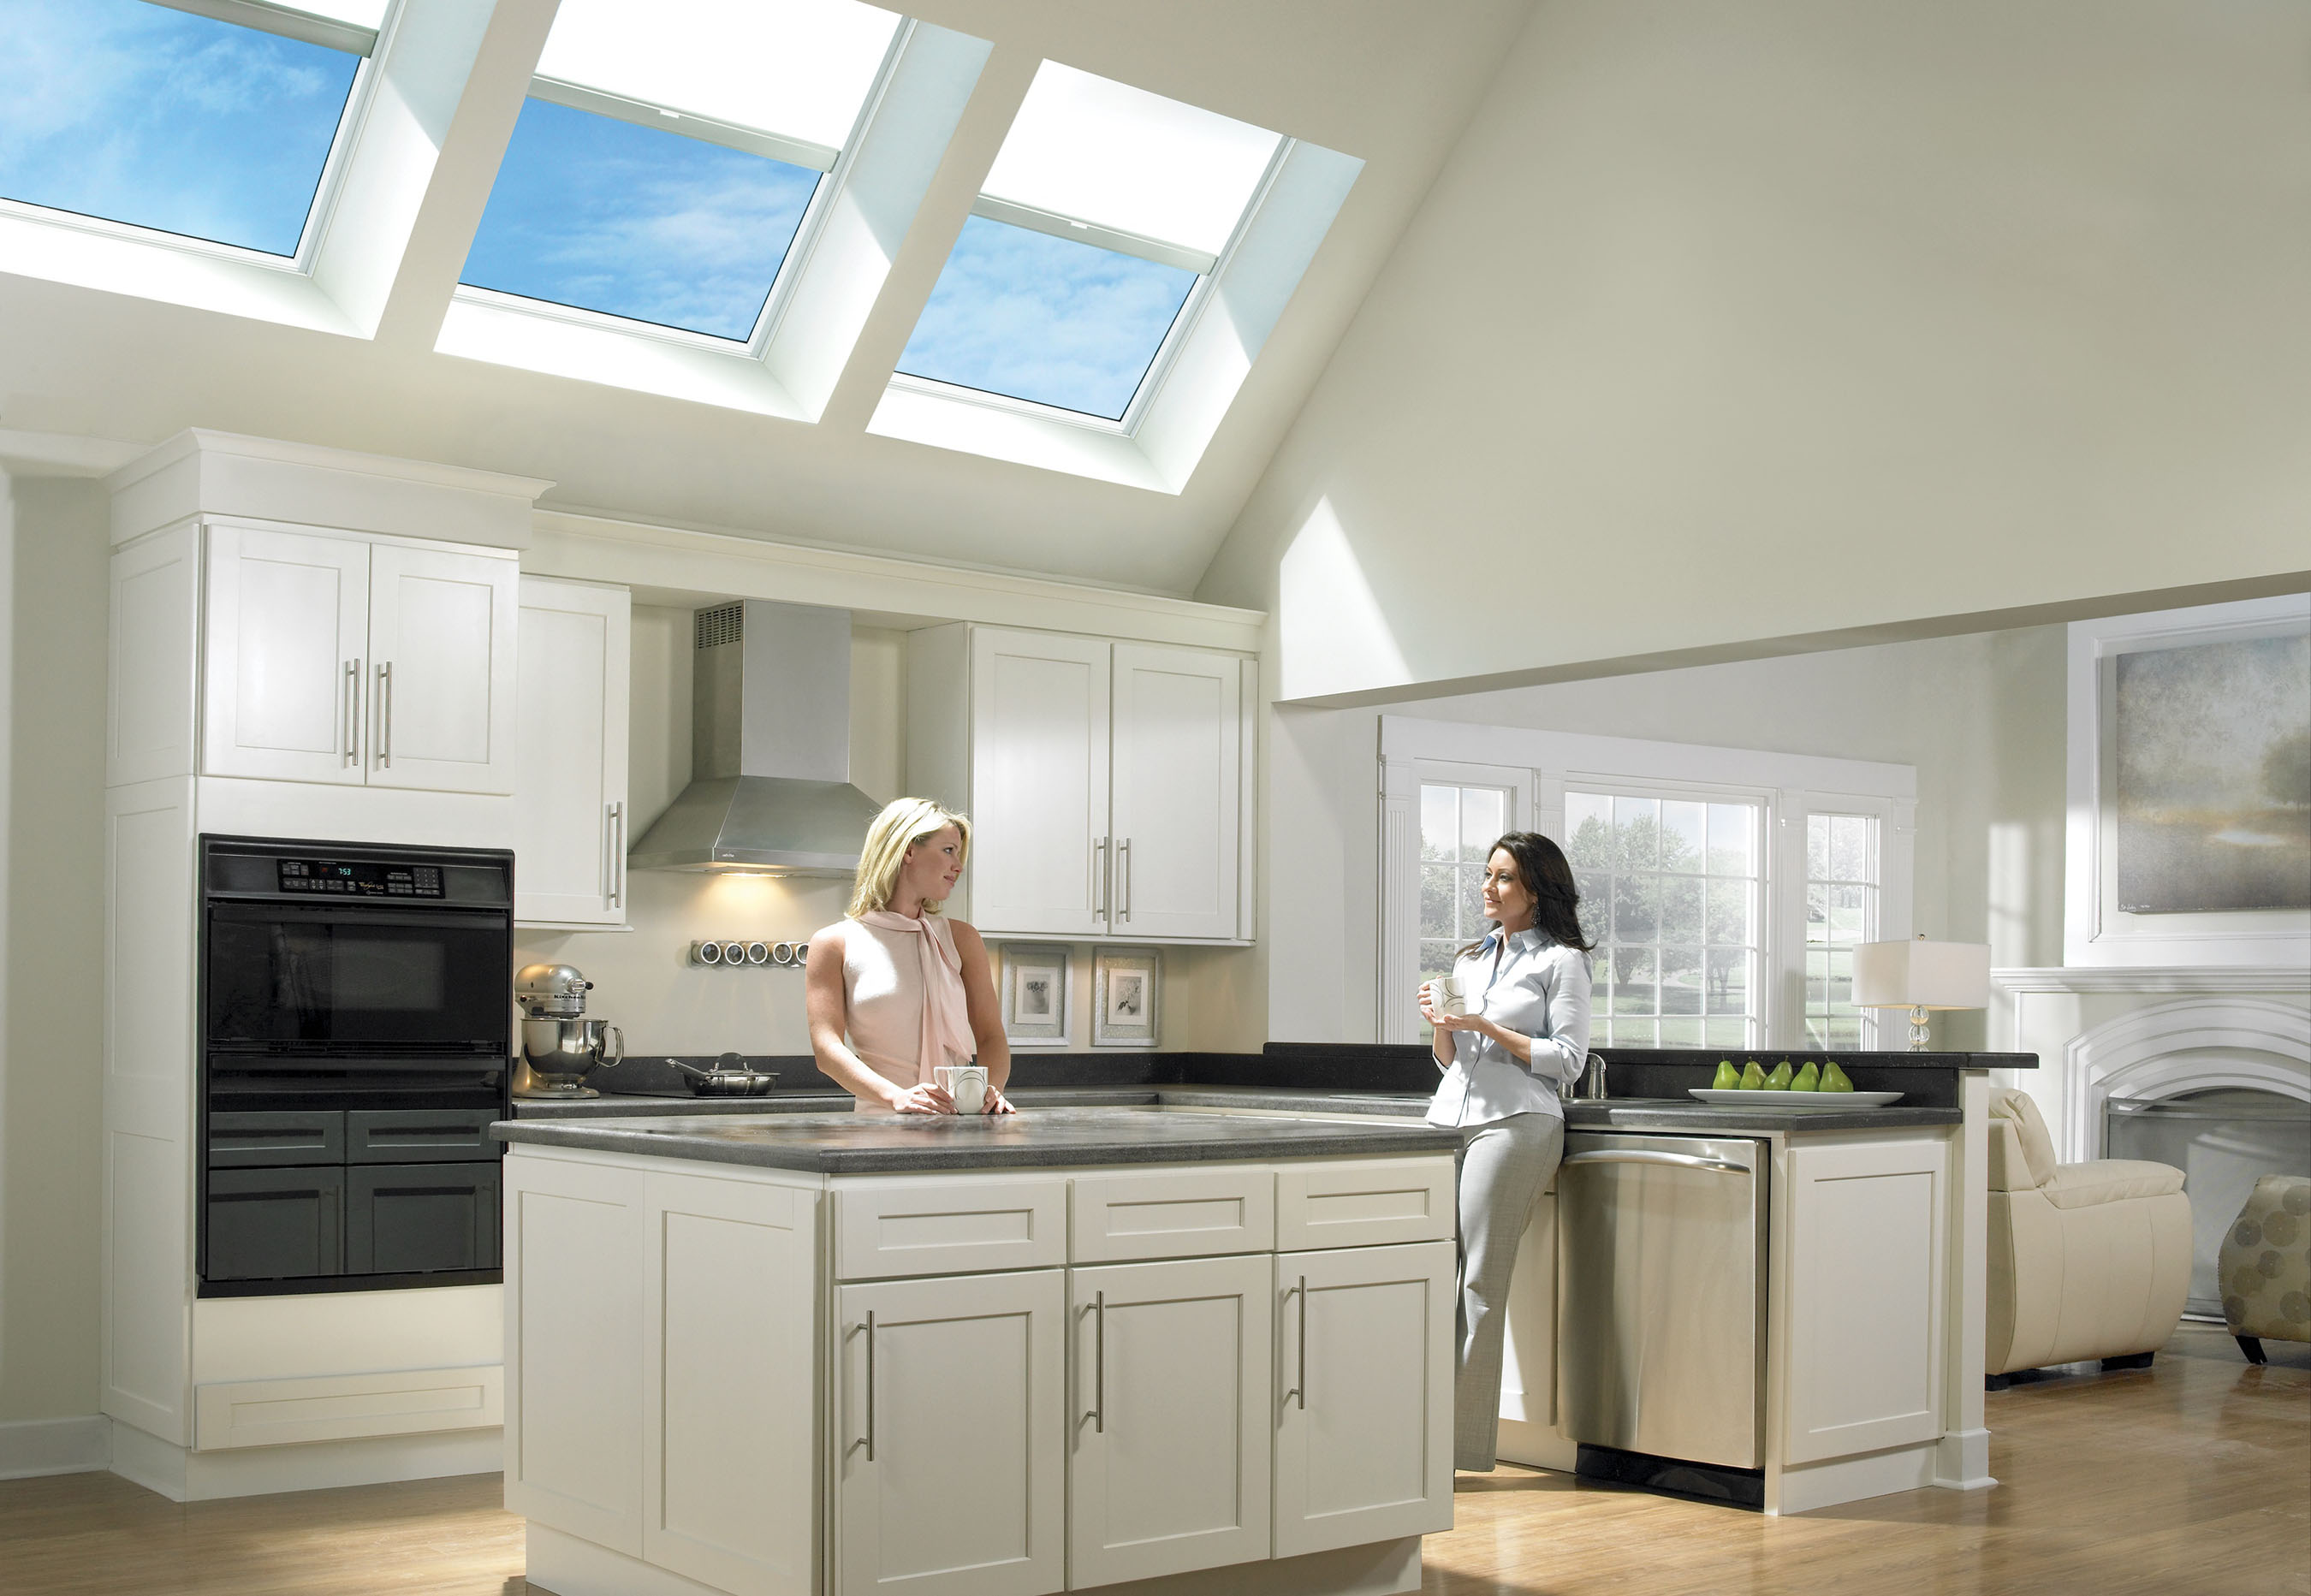 Marvin Windows & Skylights with Velux Shades